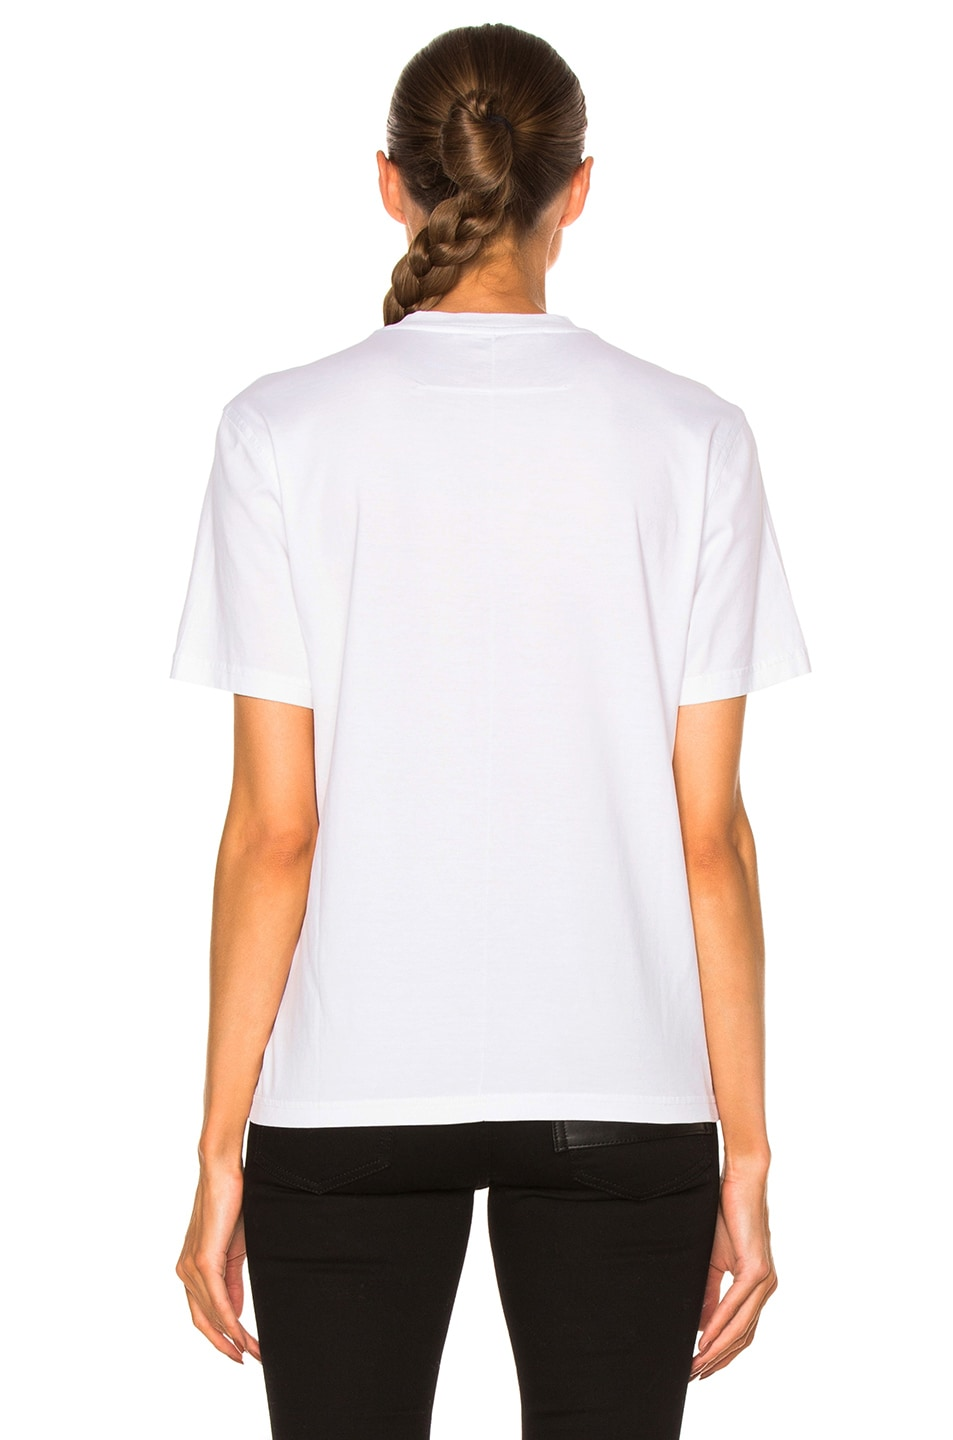 Givenchy columbian fit star print t shirt in black white for Givenchy star t shirt